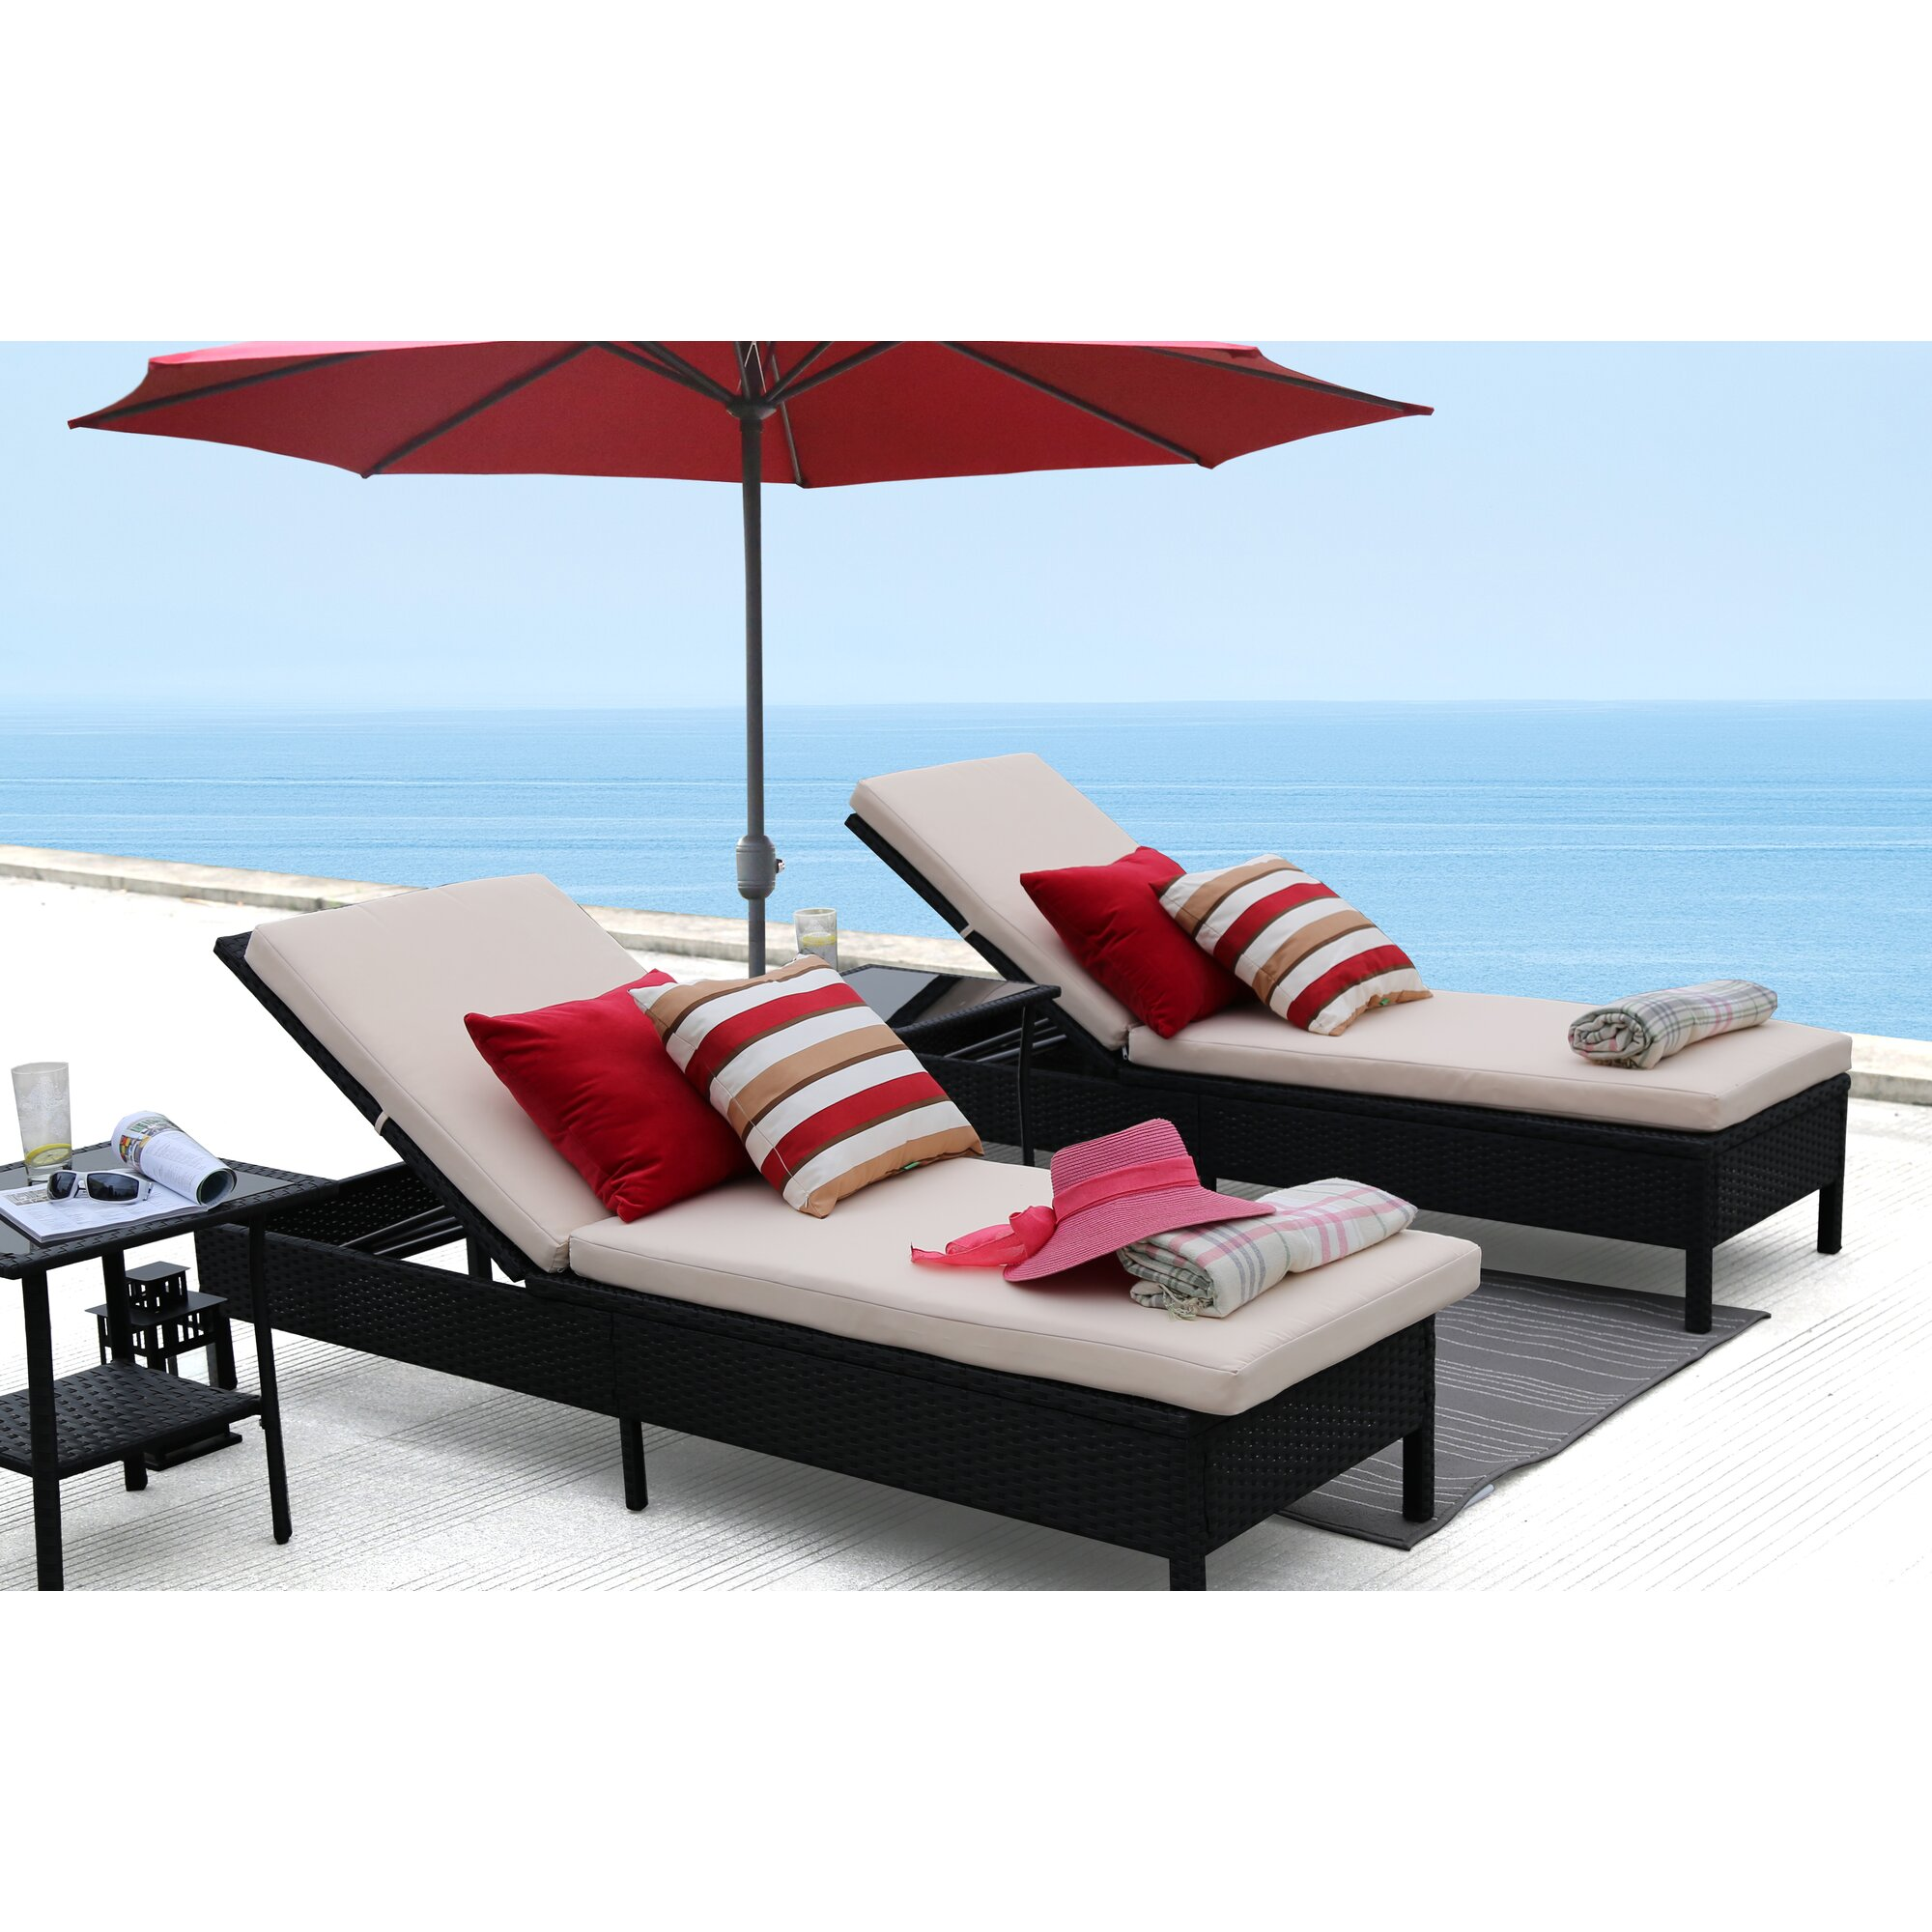 Baner garden chaise lounge with cushion reviews for 3 in 1 beach chaise lounge